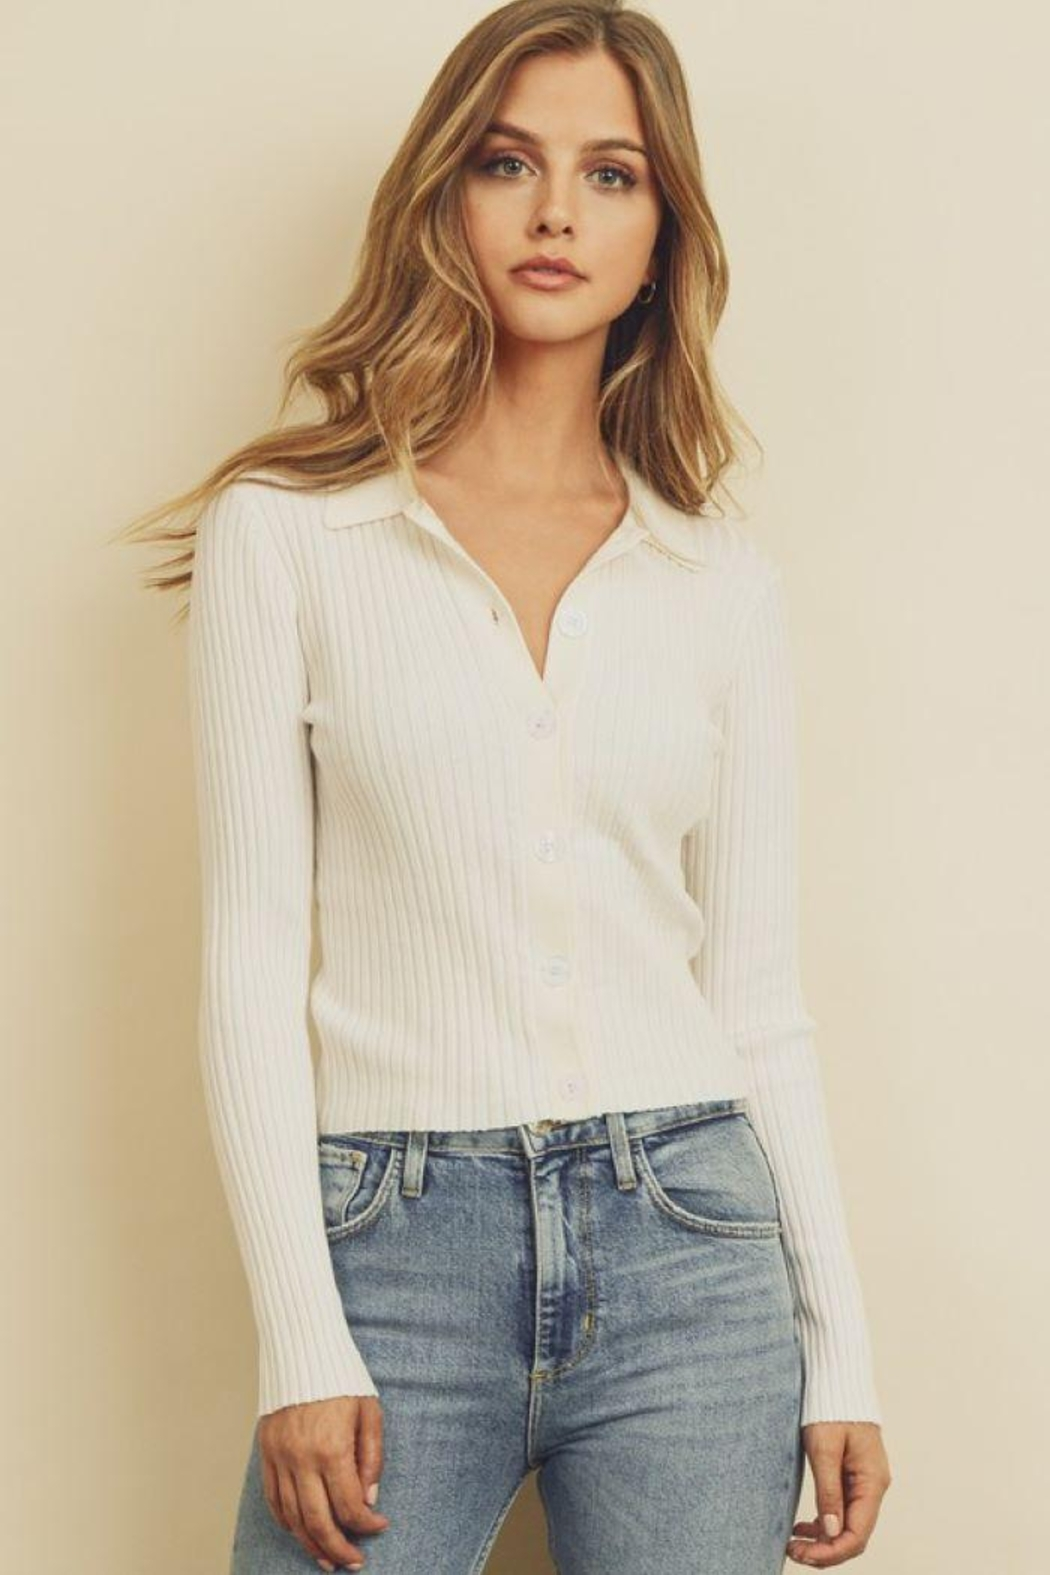 dress forum Collared Button-Down Knitted Top - Main Image